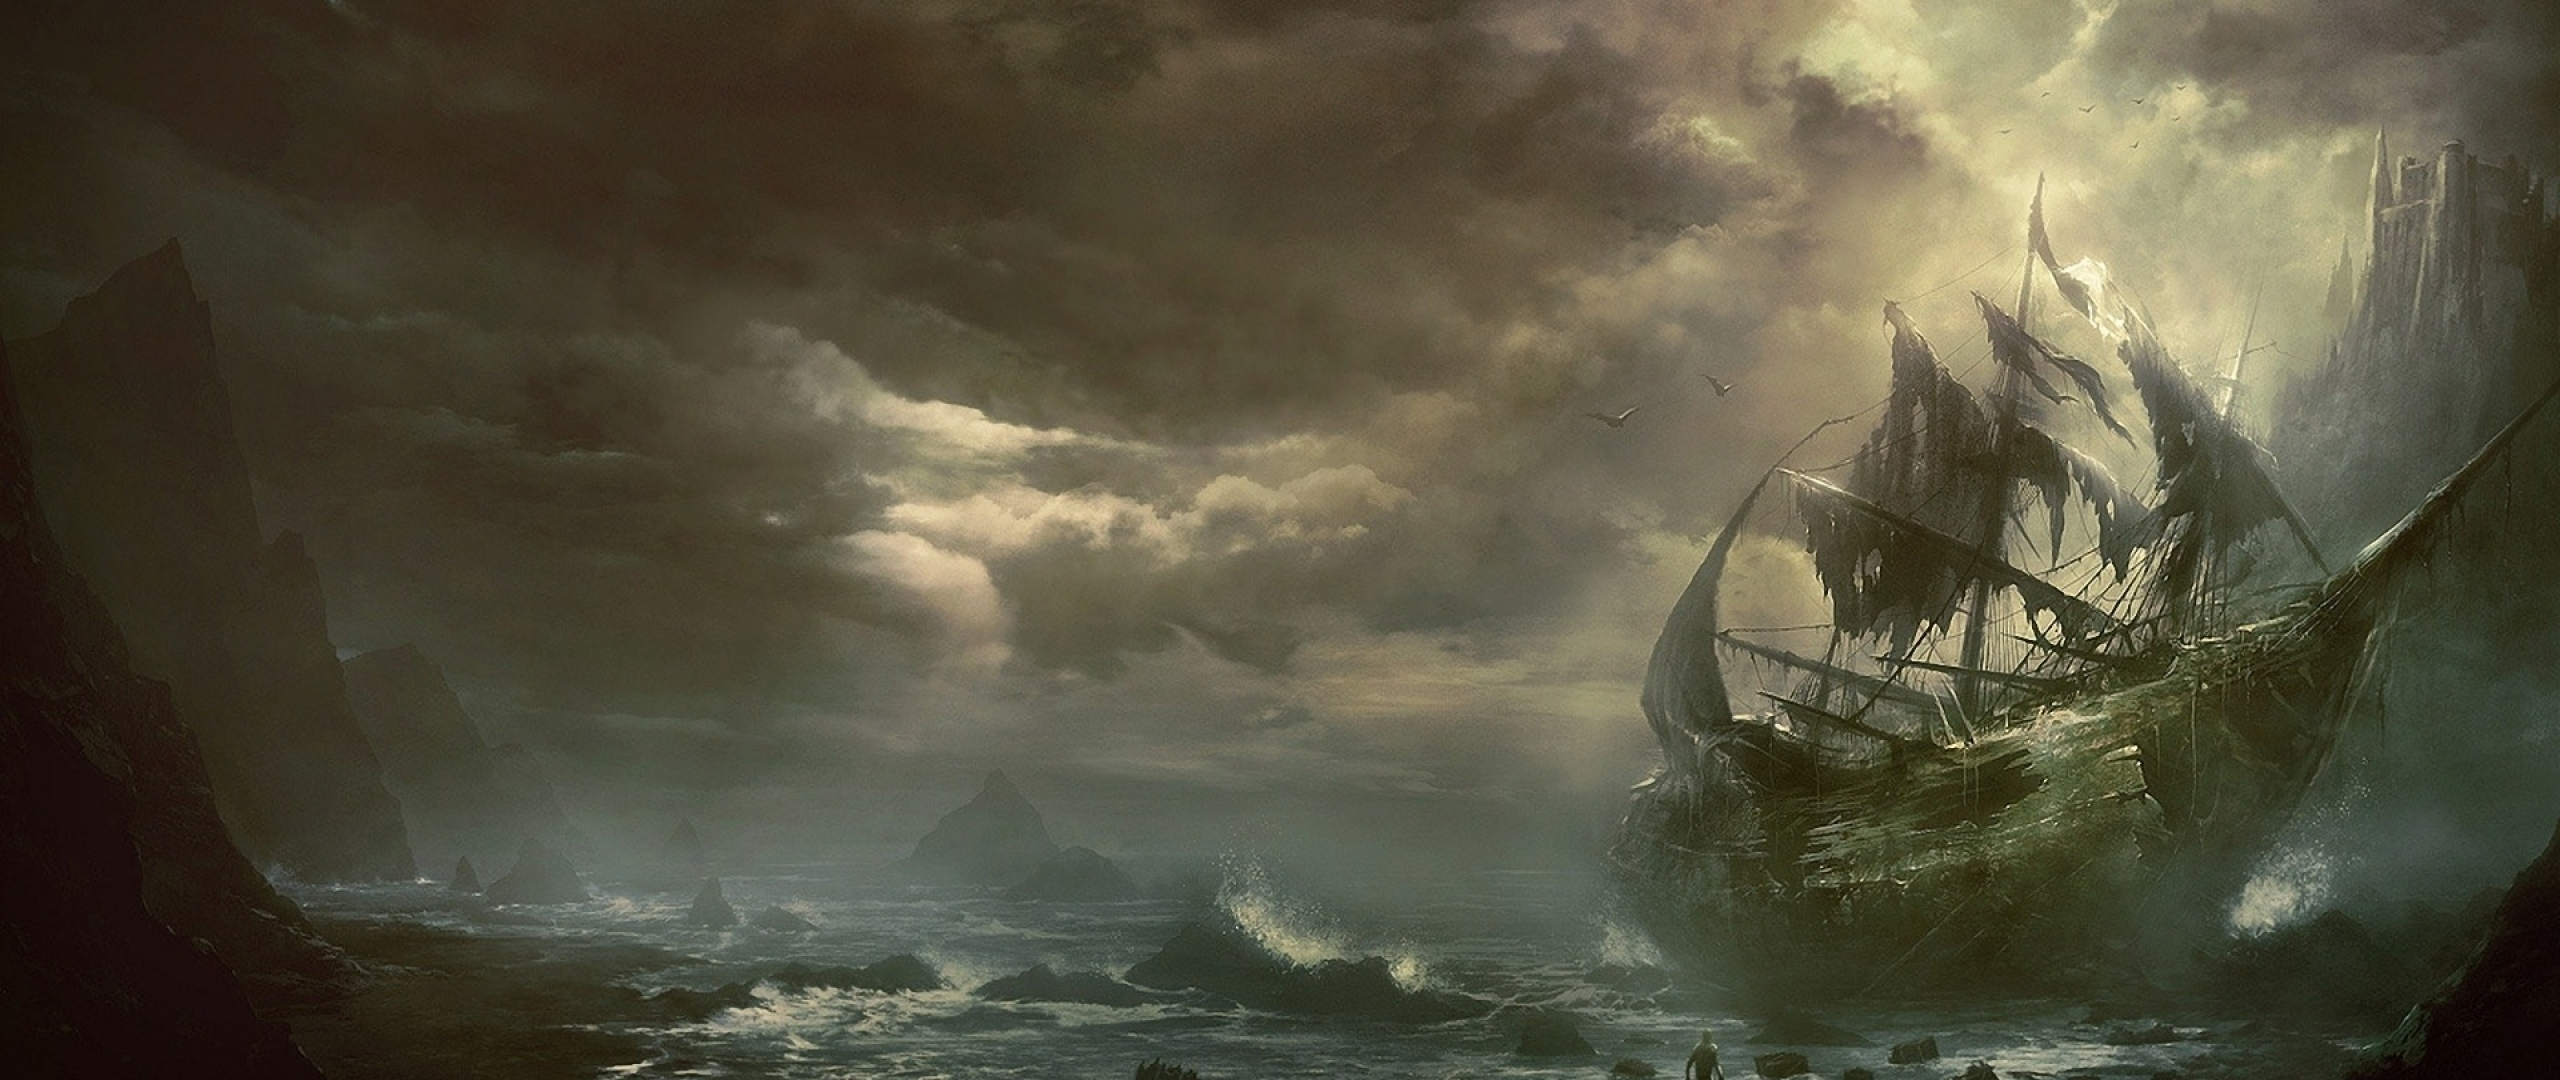 2560x1080 Wallpaper mountains clouds sea ship sailboat destroyed 2560x1080